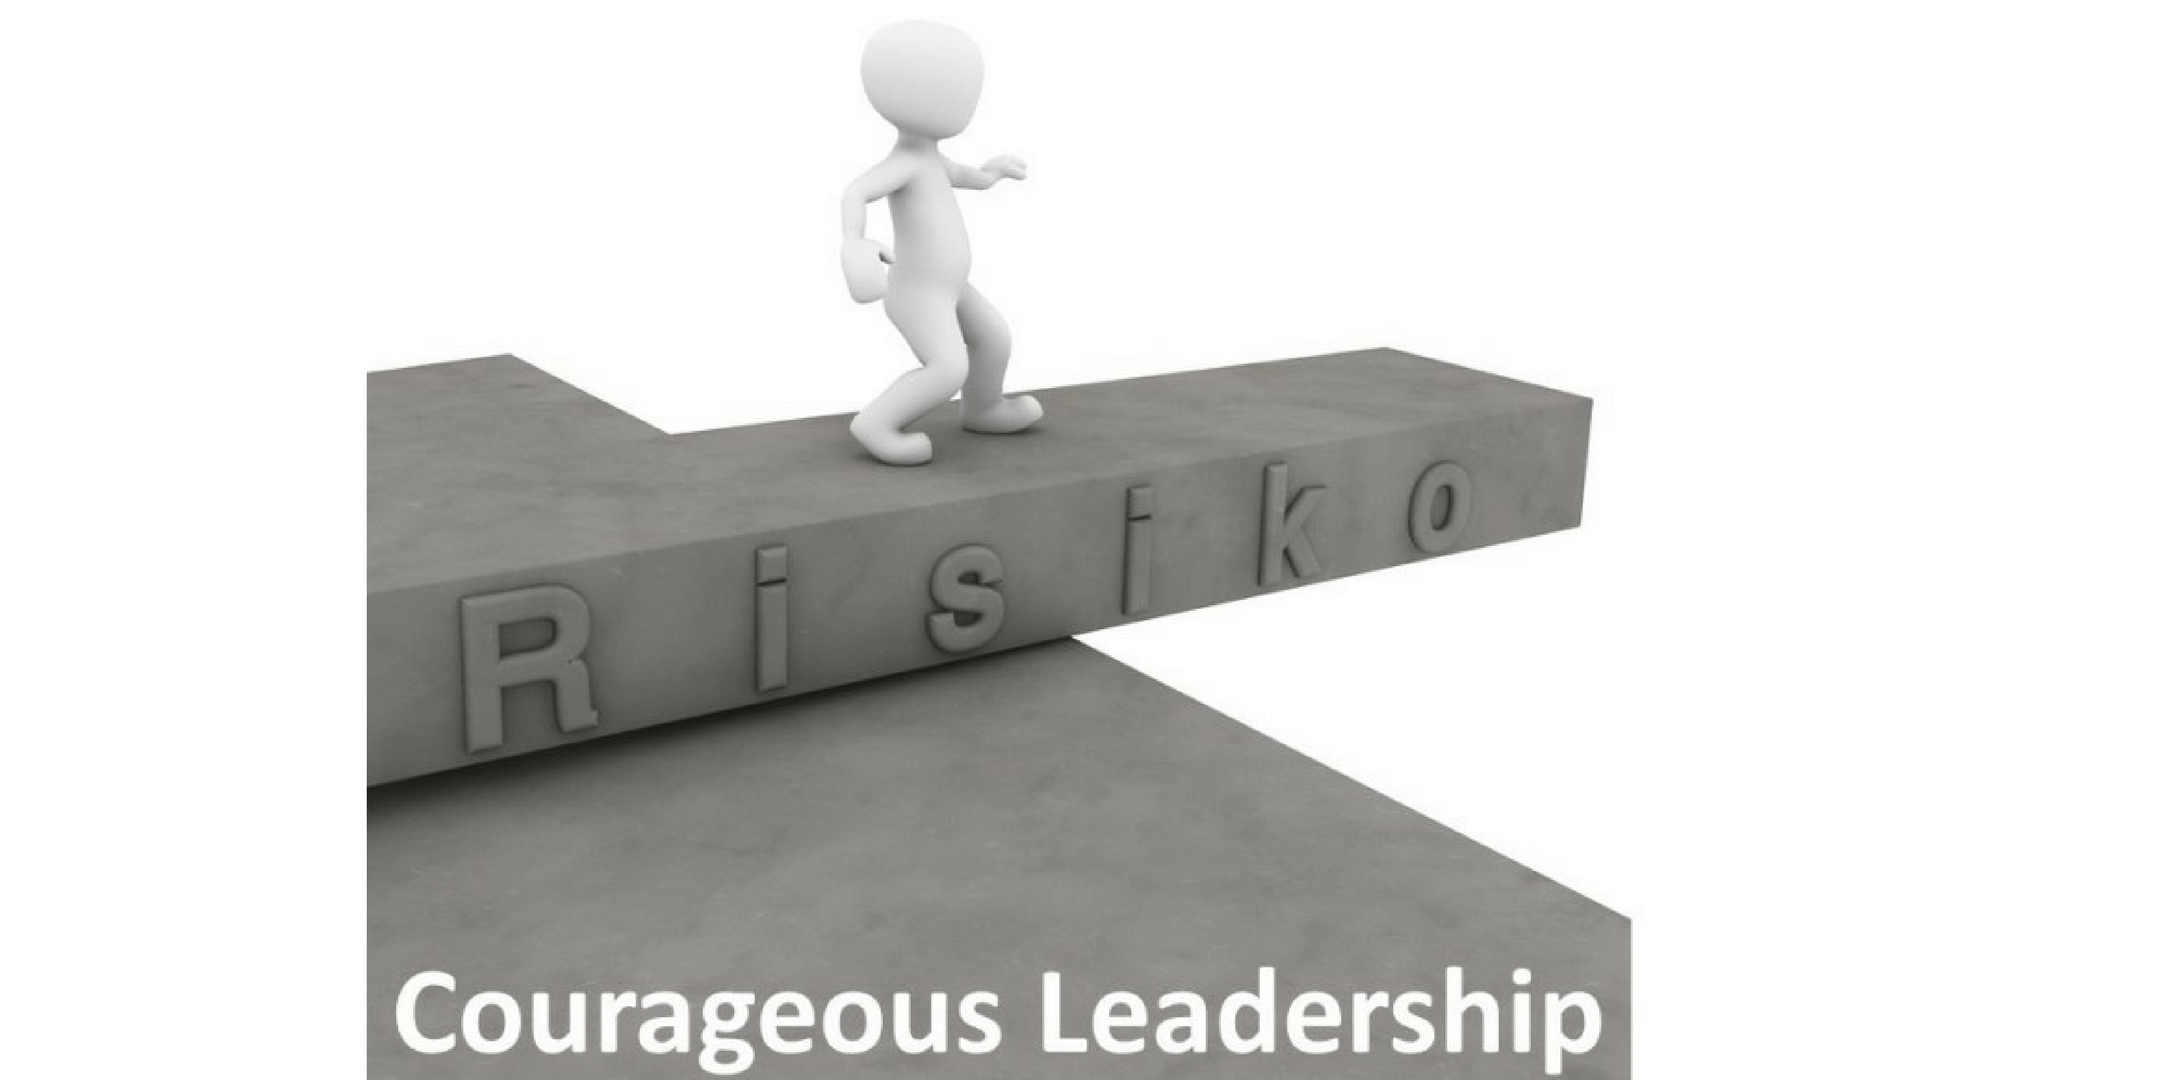 Courageous Leadership may require some risk taking